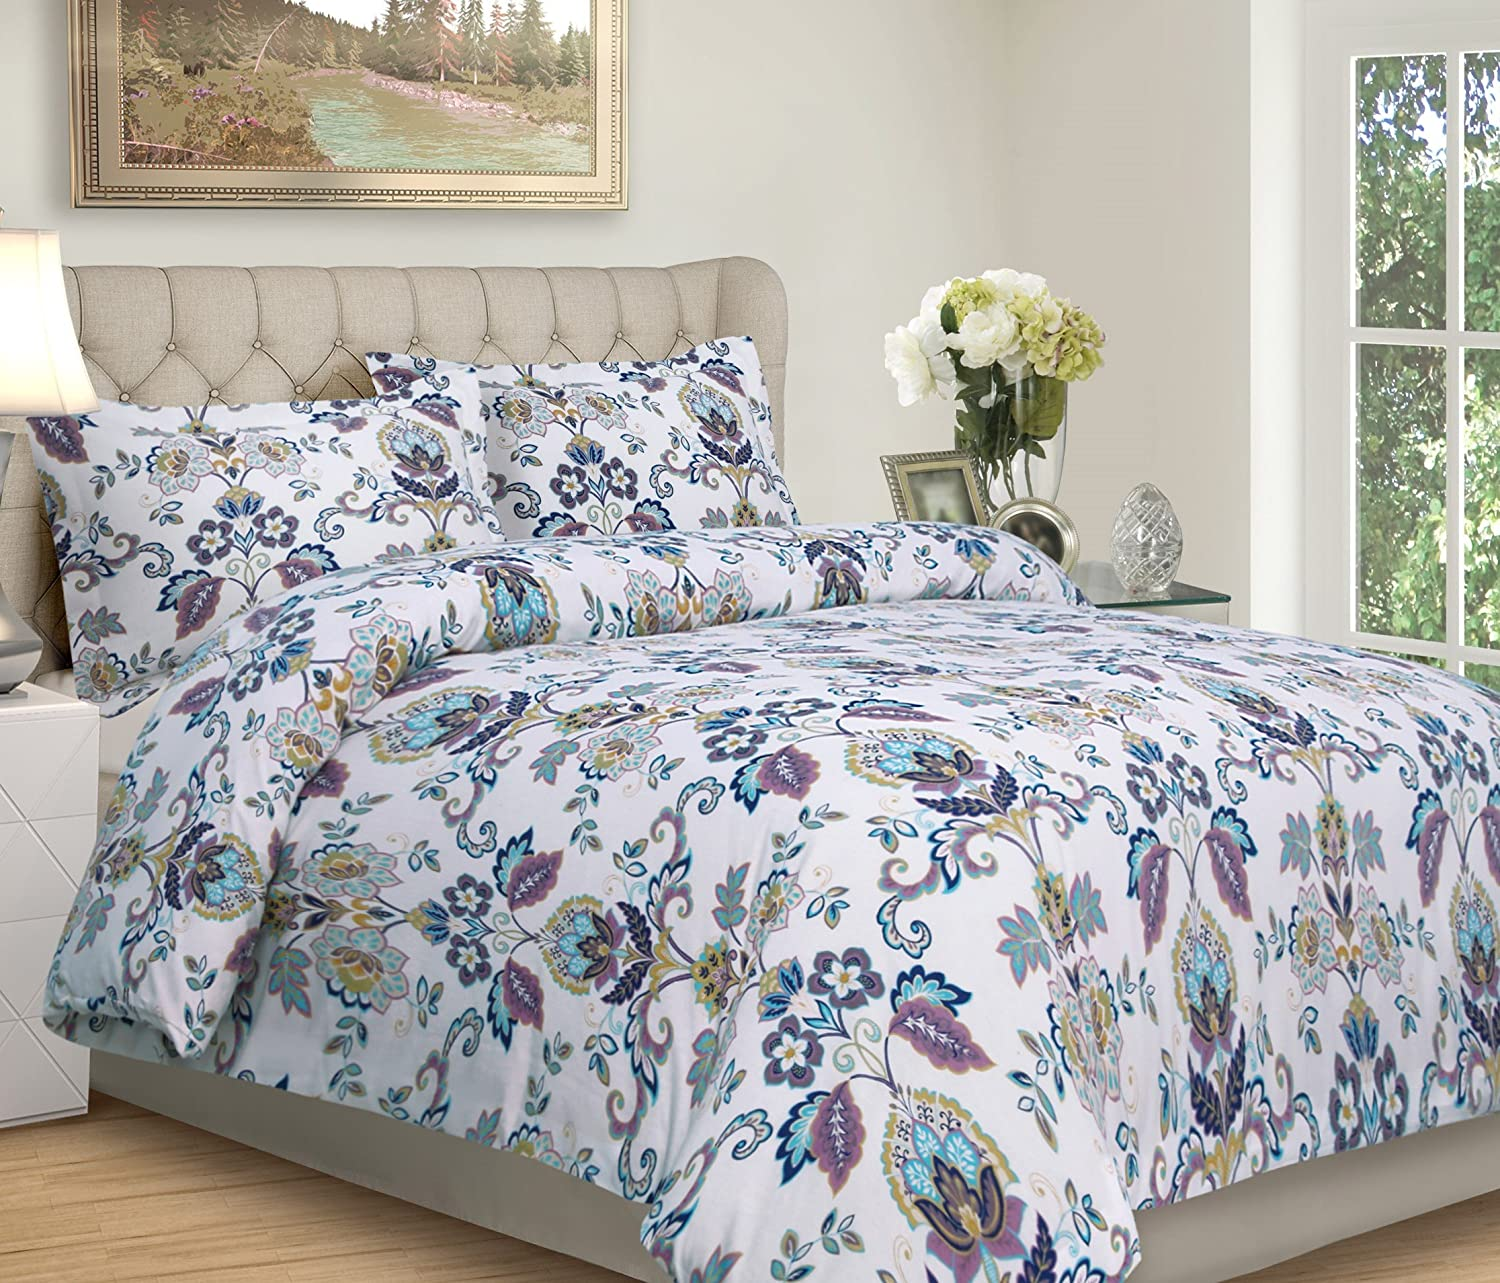 Tribeca Living Abstract Paisley Printed Flannel 200 GSM Luxury Duvet Cover Set, King, Multicolor